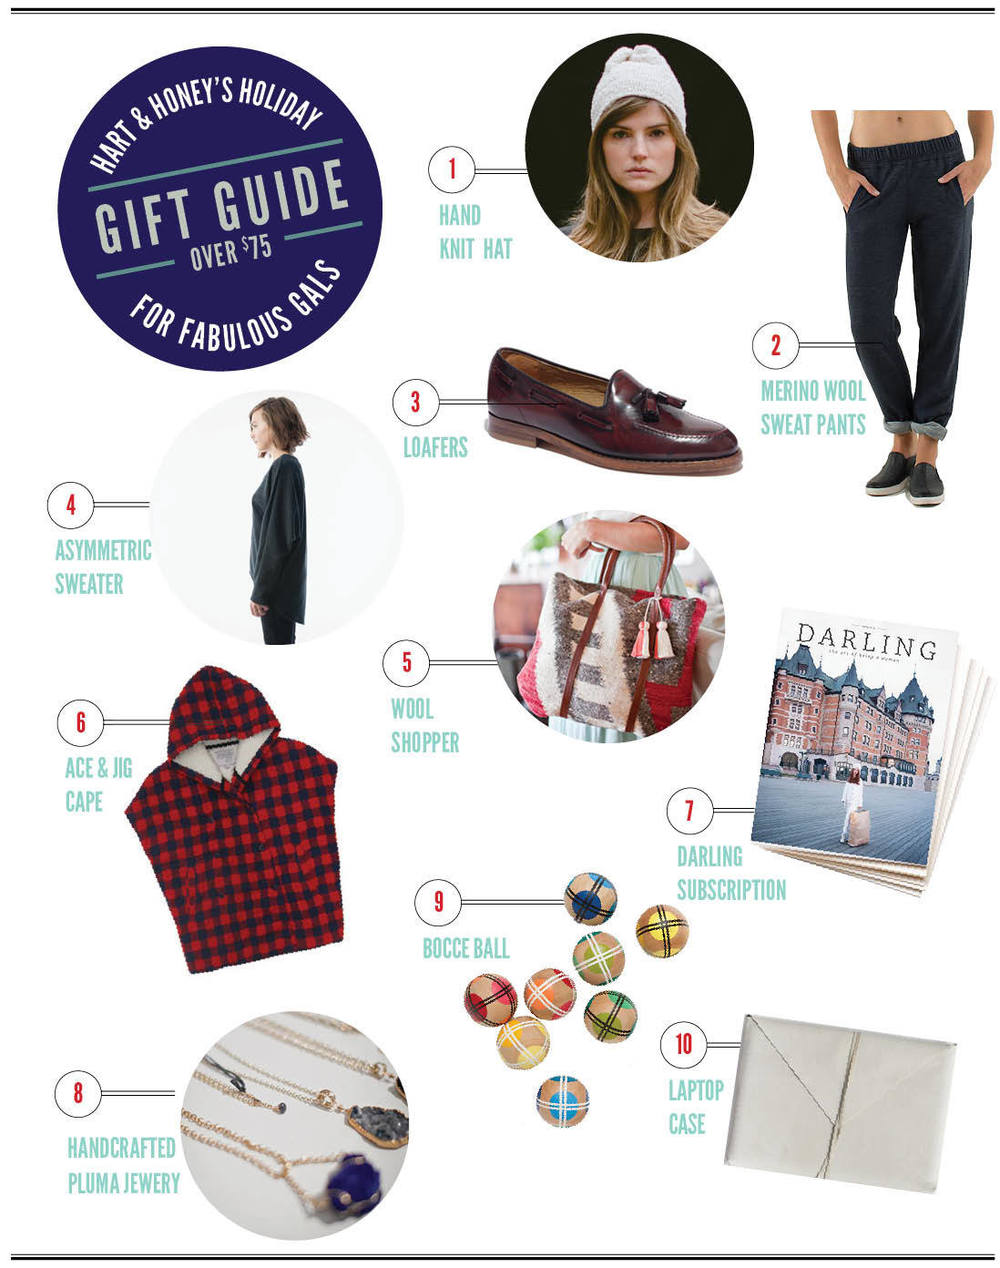 1. Josie Faye / 2. Lululemon / 3.Madewell / 4. Hack With Design / 5 .Addiah / 6. Of a Kind / 7. Darling / 8. Pluma Jewelry / 9.Terrain / 10. Mum & Co.